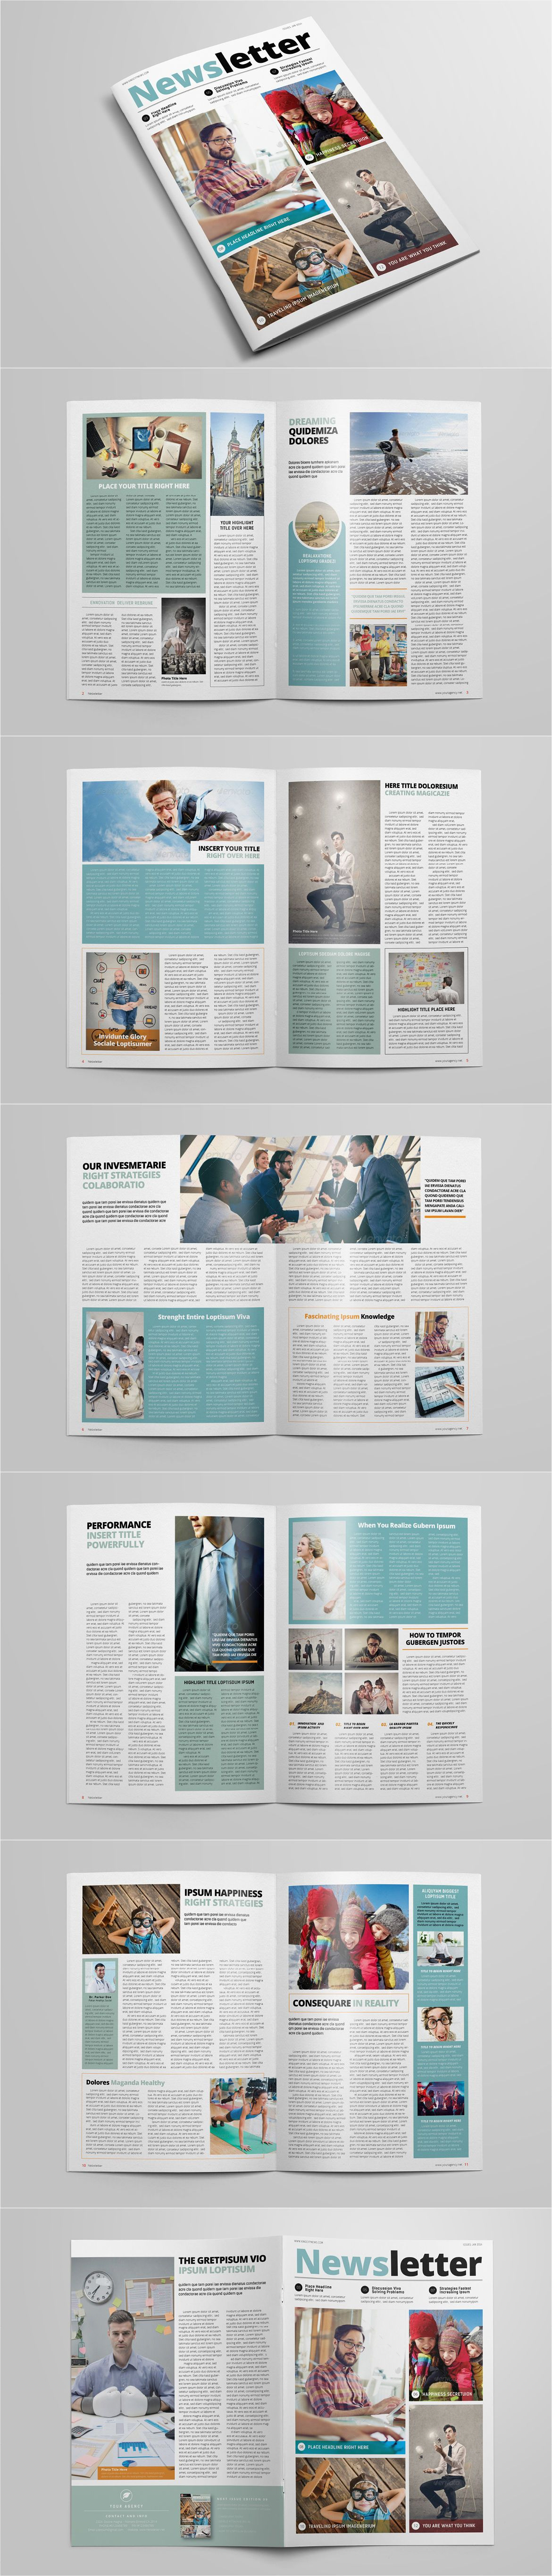 Multipurpose Newsletter Template InDesign INDD | layout | Pinterest ...